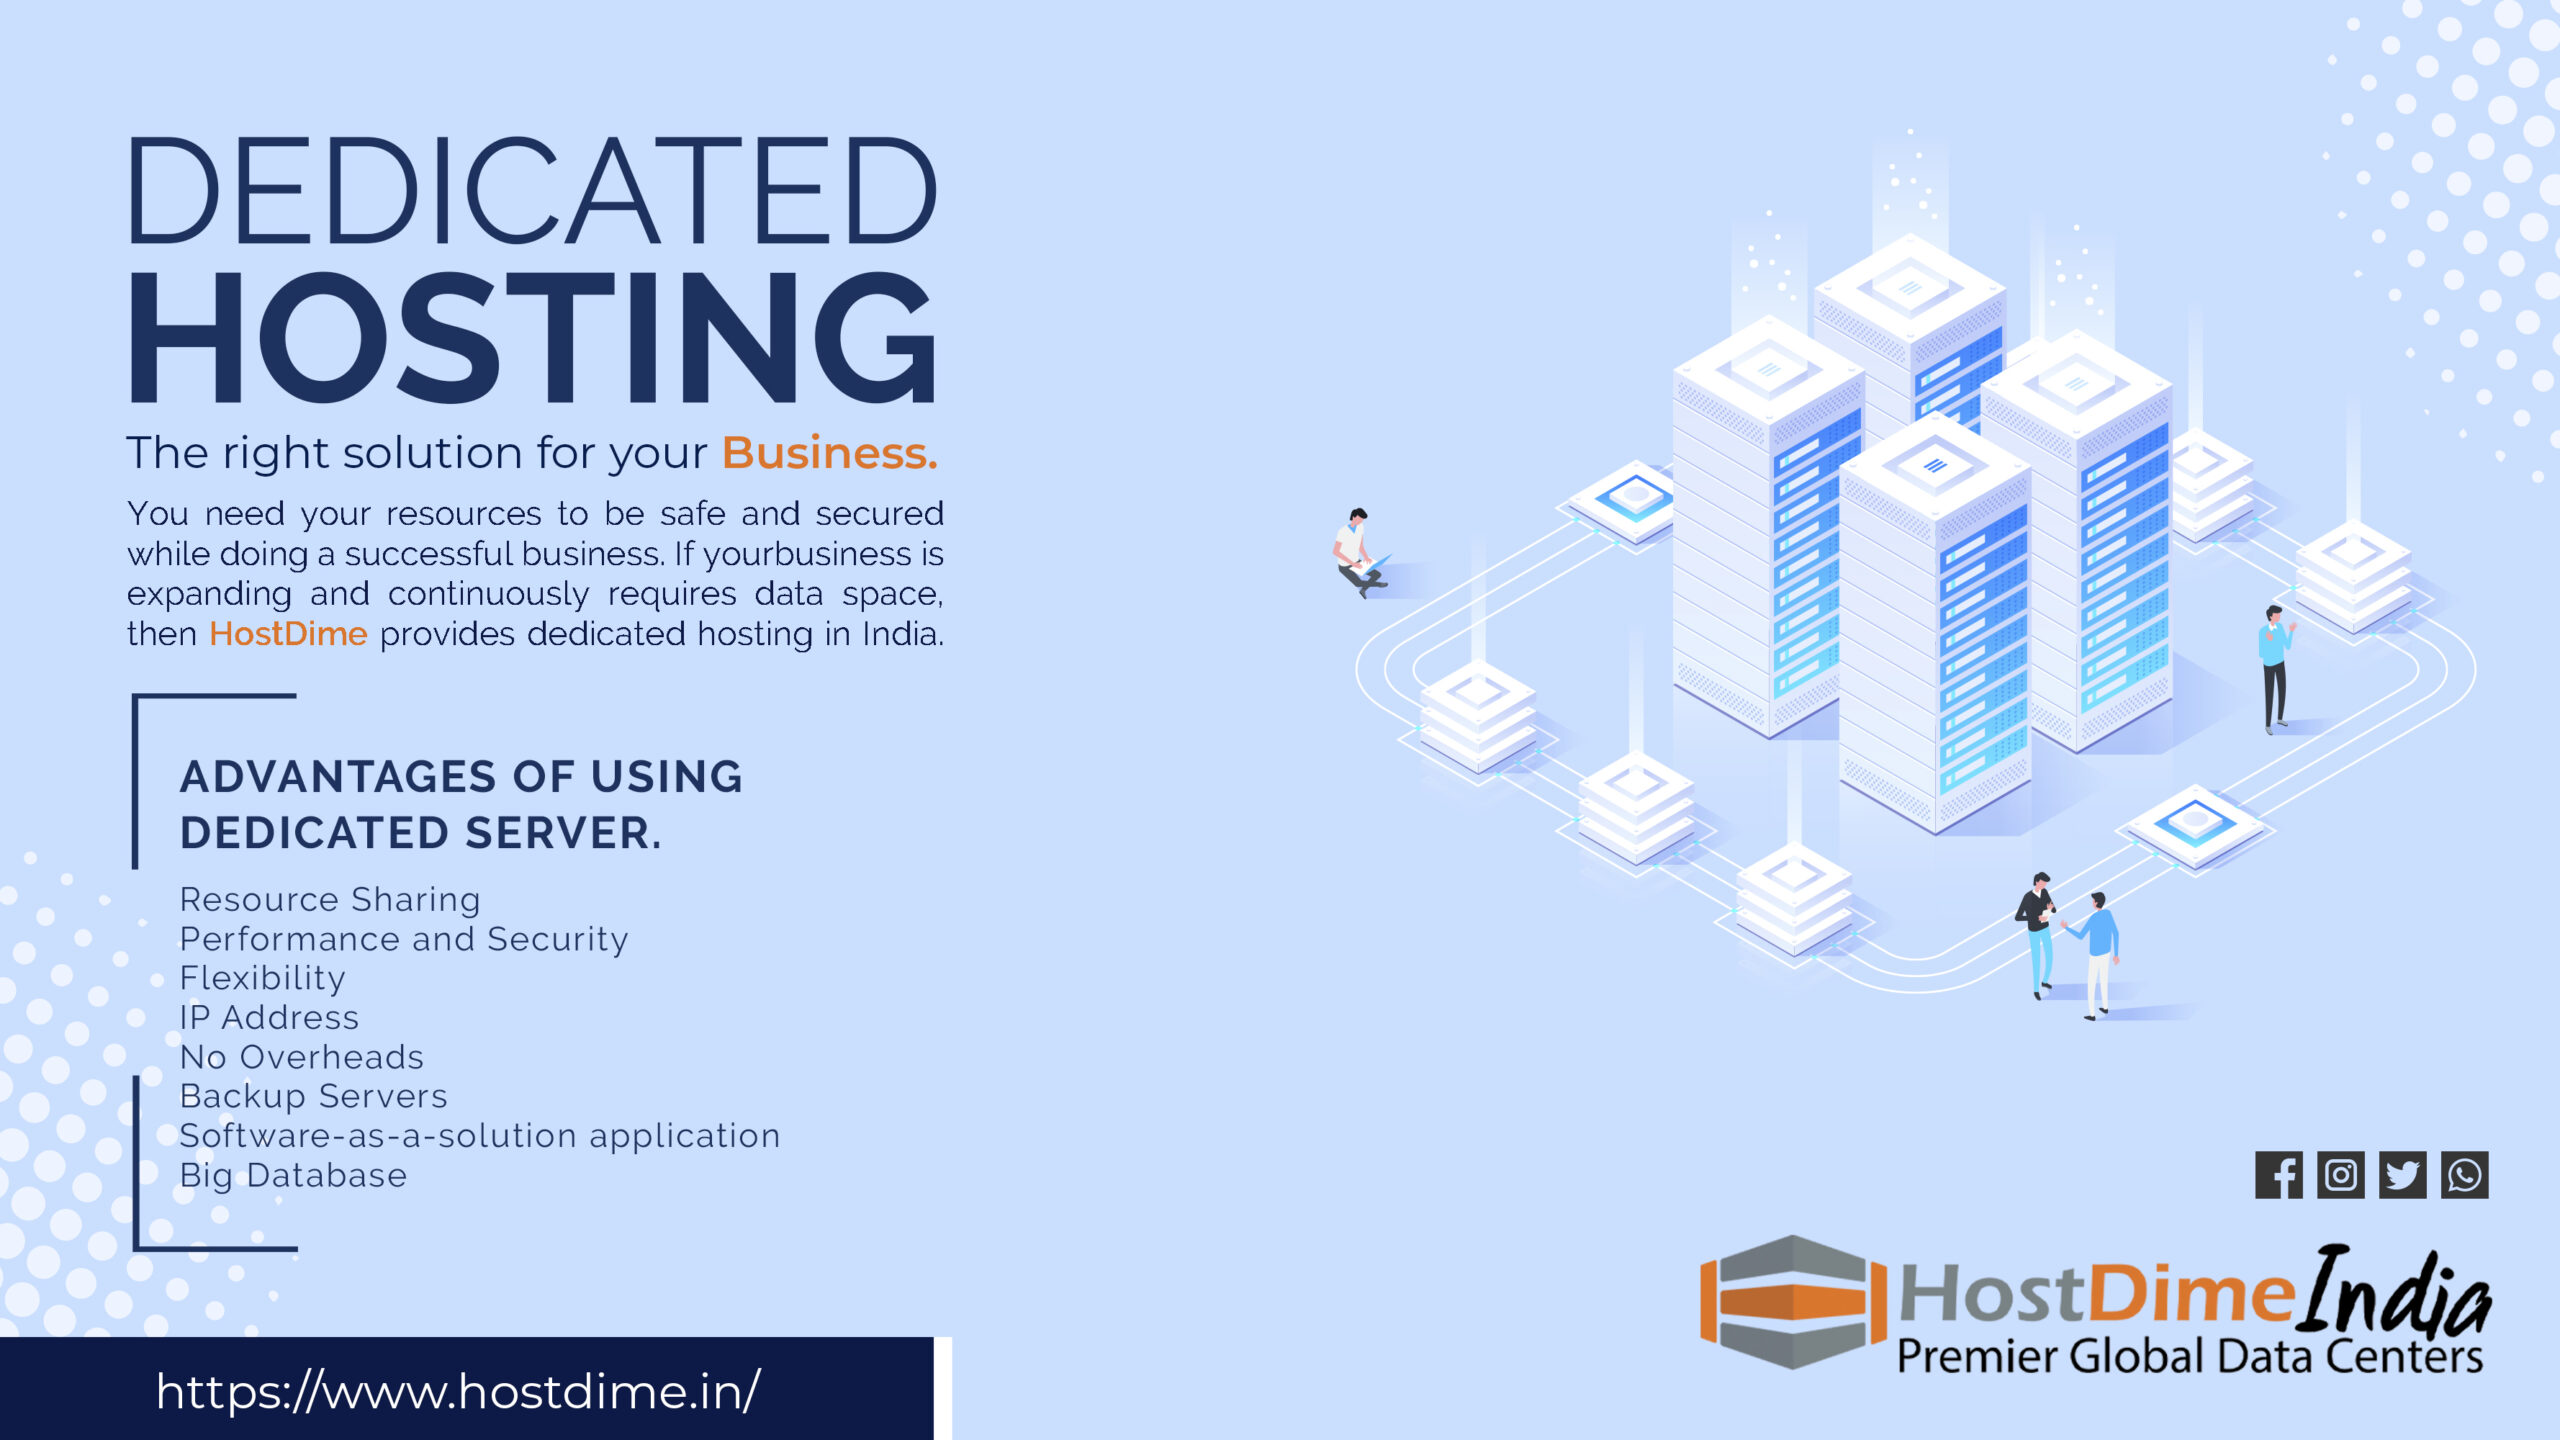 Dedicated hosting, the right solution for your Business.